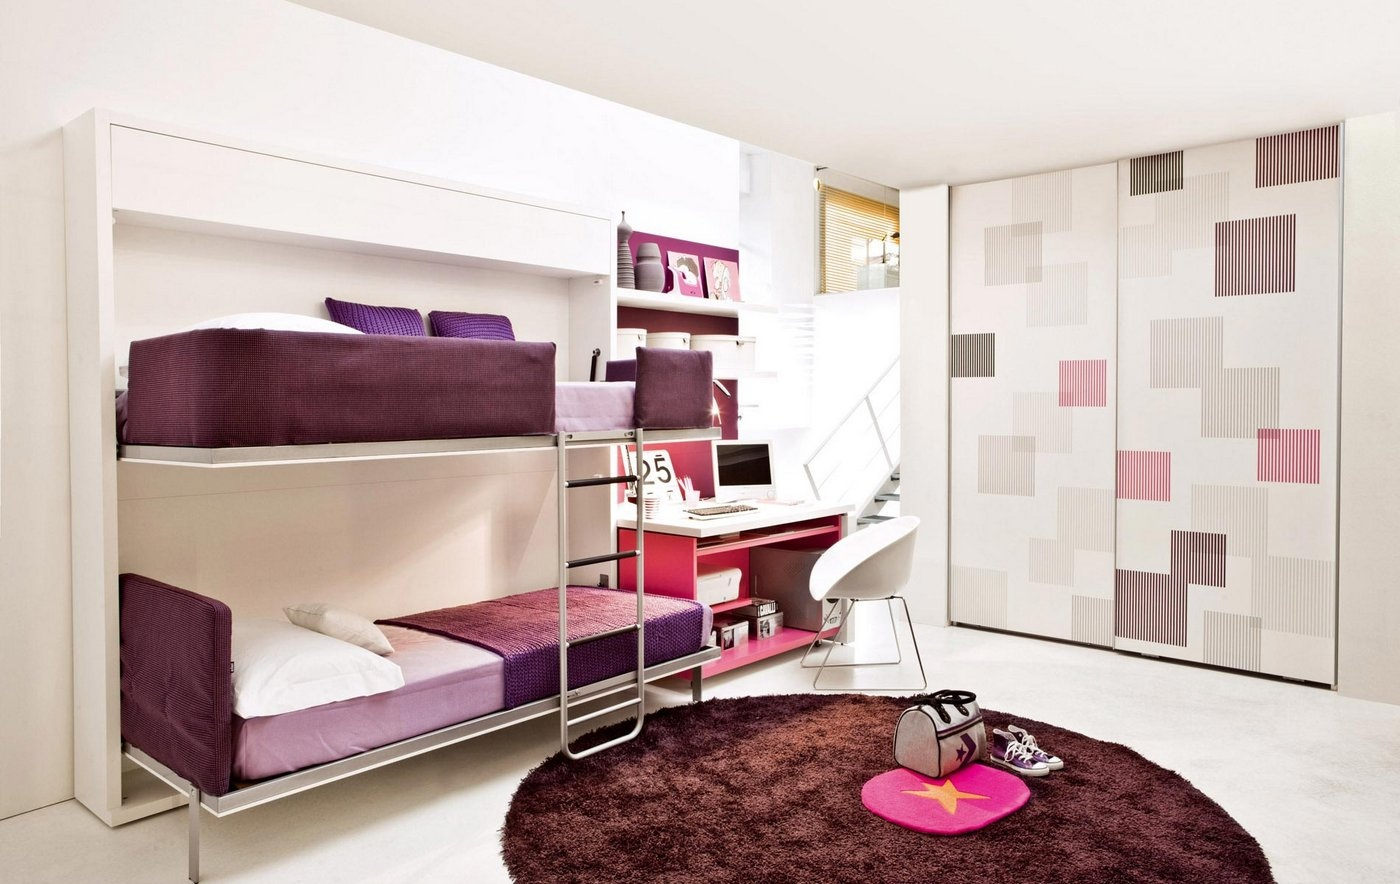 This Purple Kidu0027s Room, For Instance, Is Relatively Small But Still Has Room  For